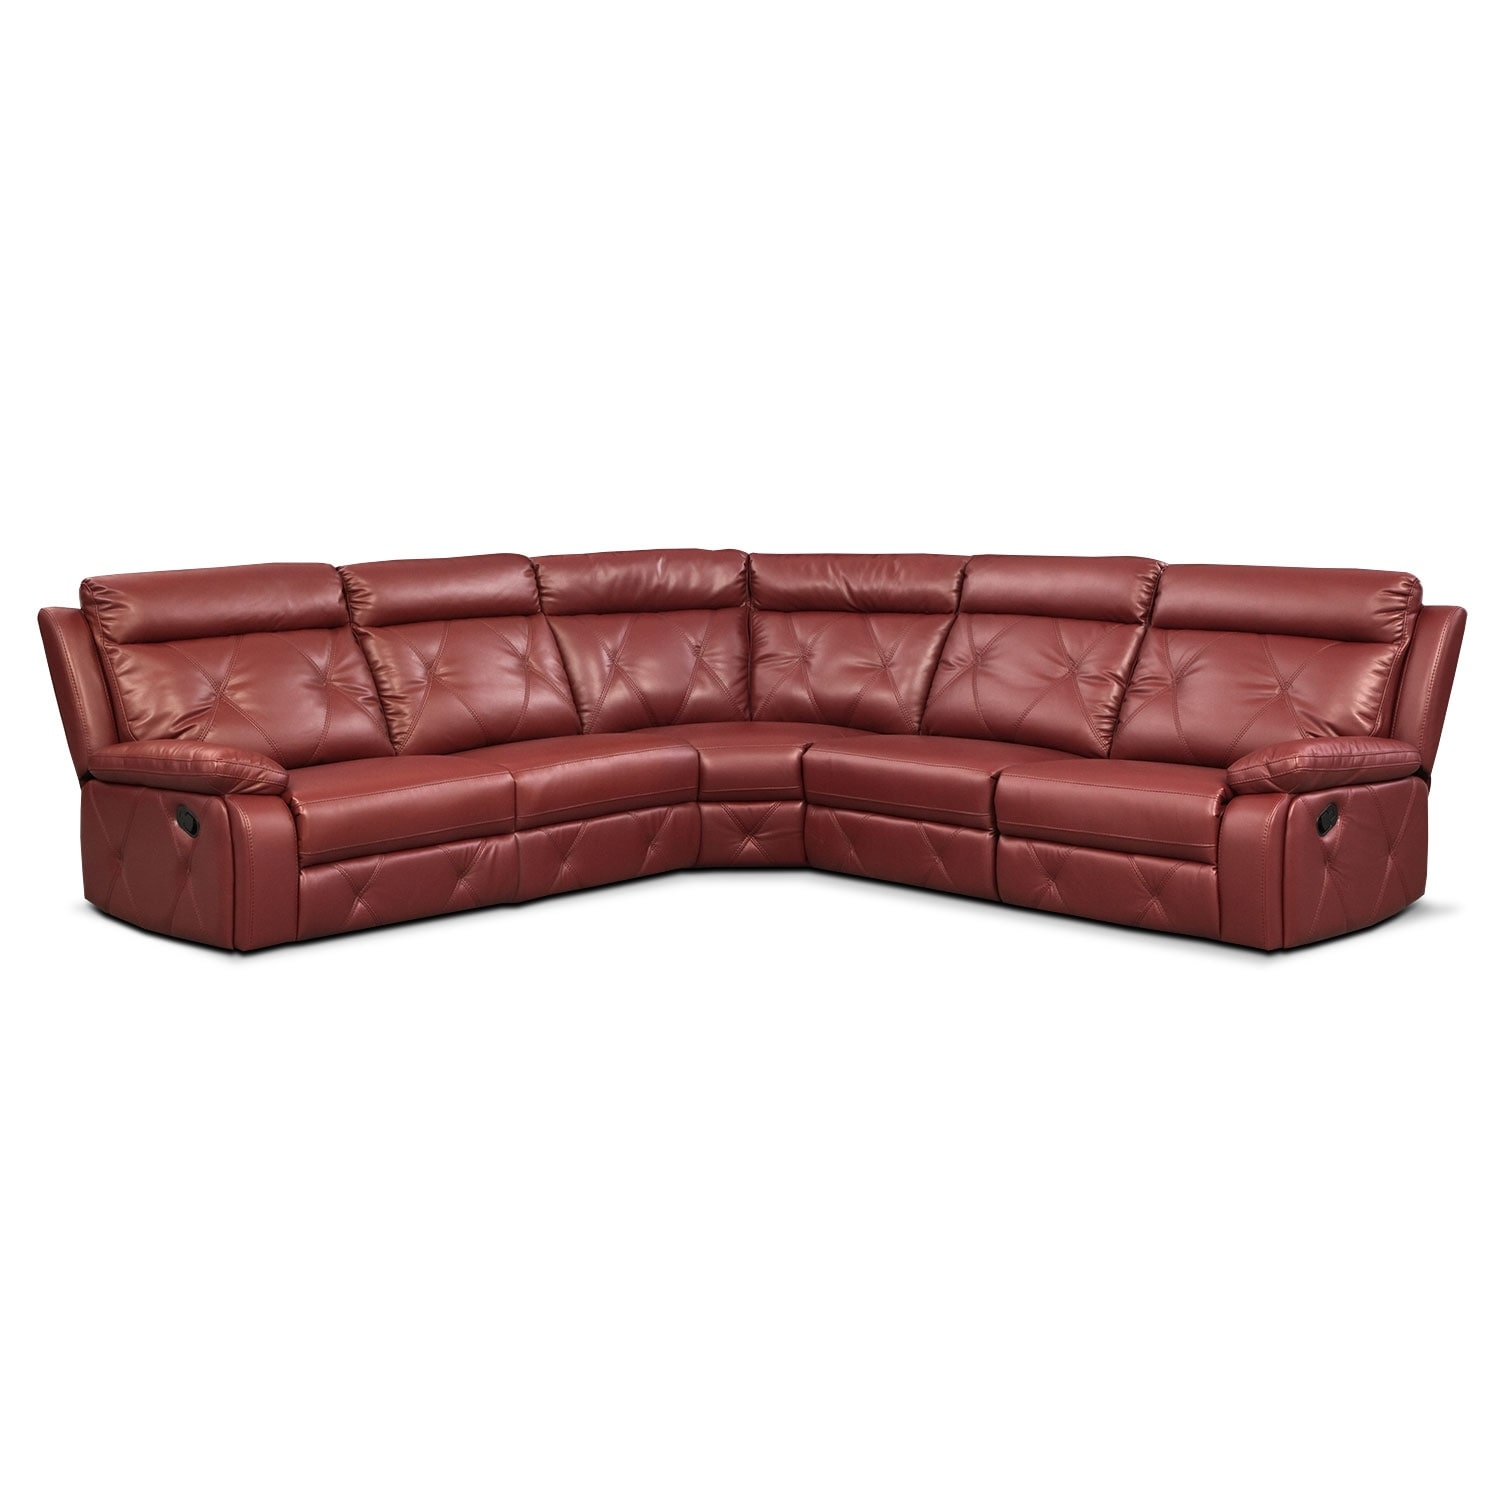 Living Room Furniture - Dante 5-Piece Reclining Sectional with 3 Reclining Seats - Red